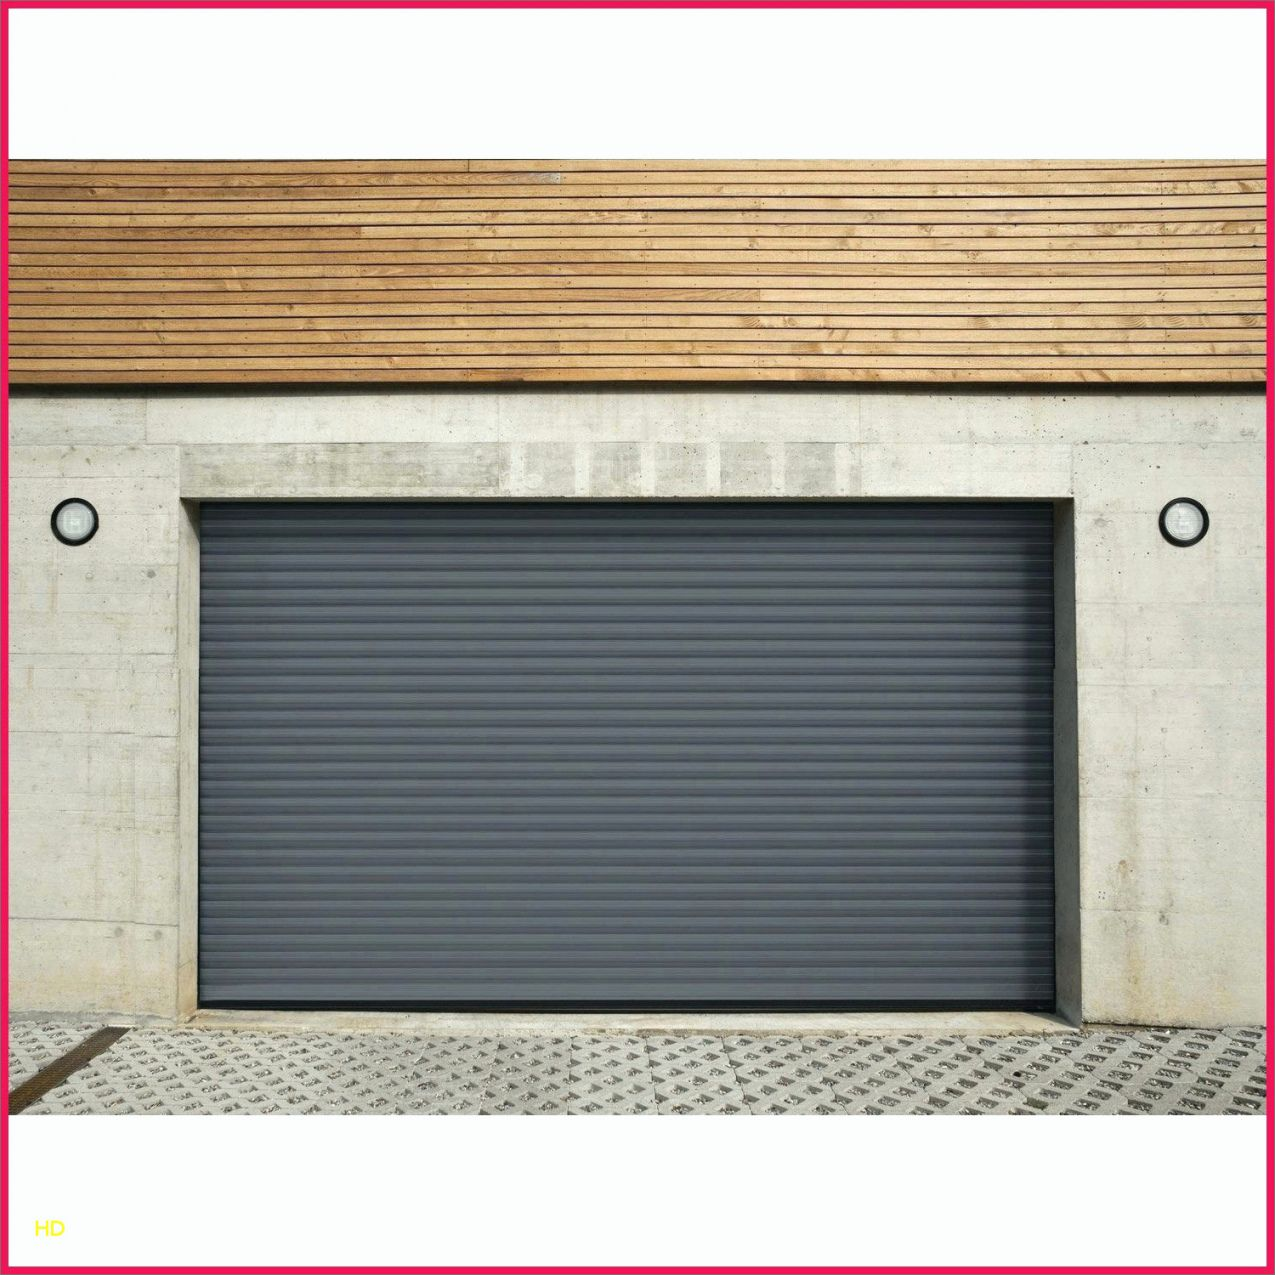 20 Prix Toupie Beton Brico Depot 2019 Black Garage Doors Interior Design Bedroom Outdoor Decor